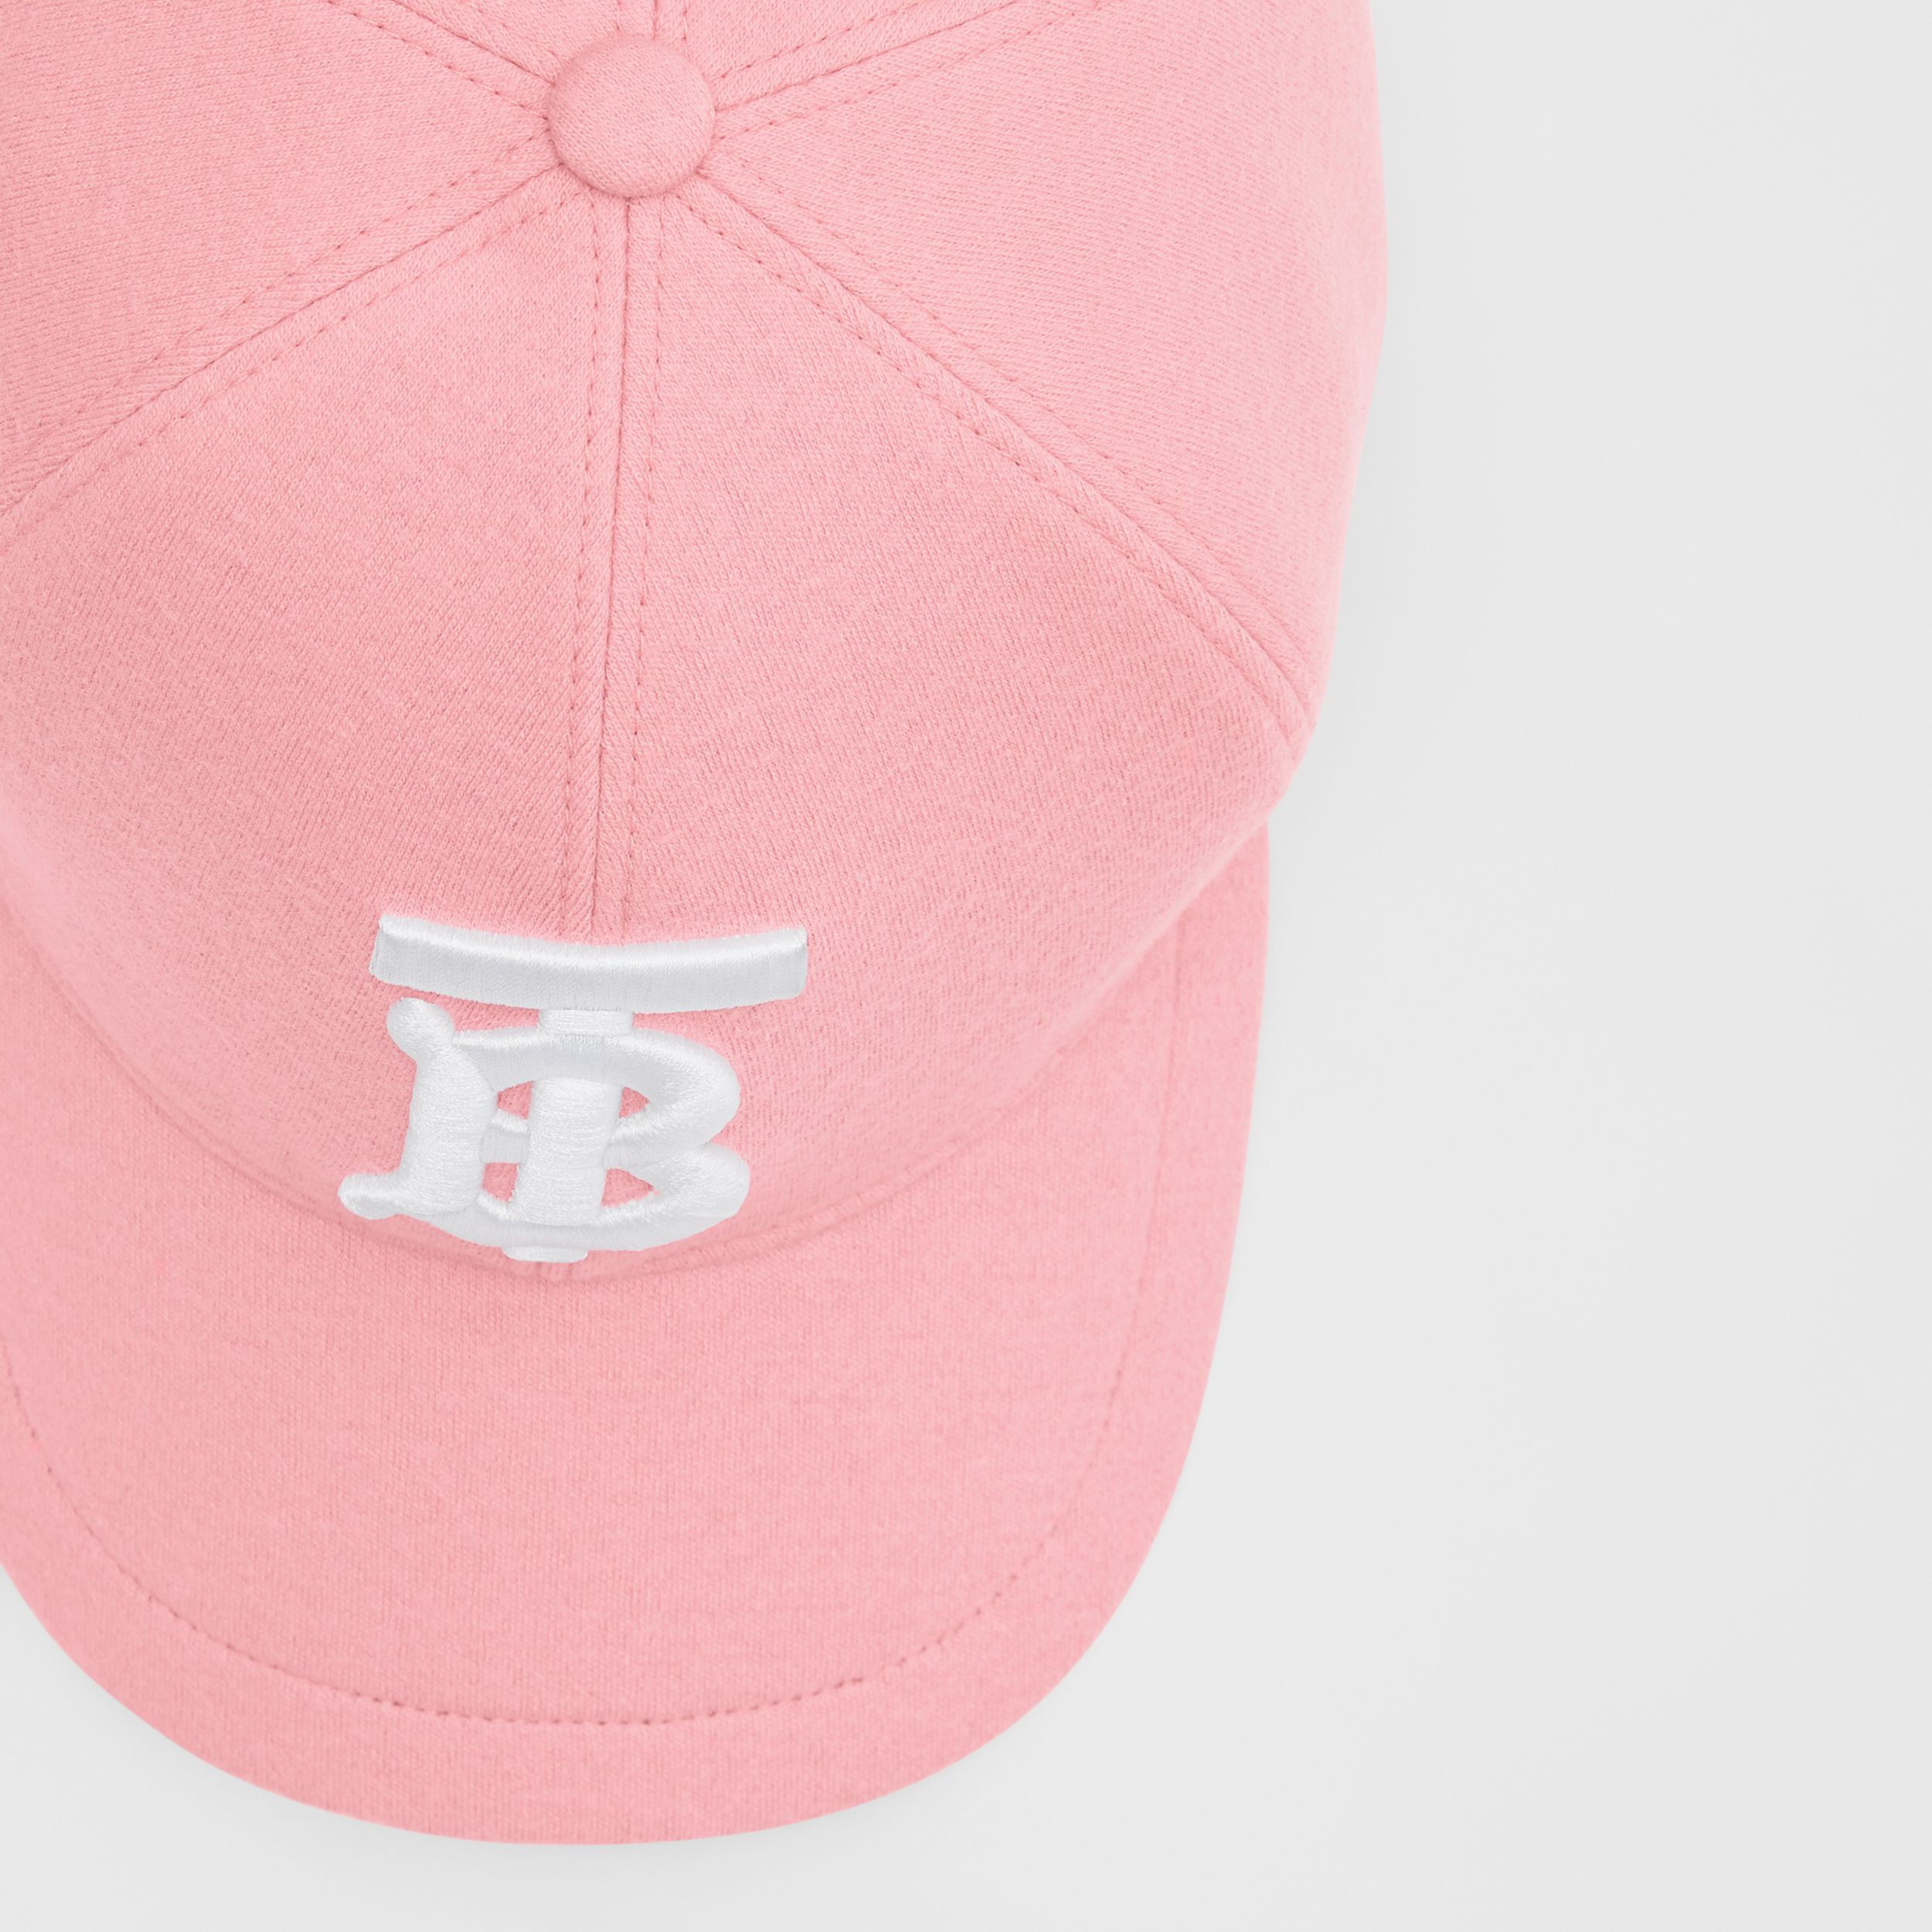 Monogram Motif Jersey Baseball Cap in Pink | Burberry - 2